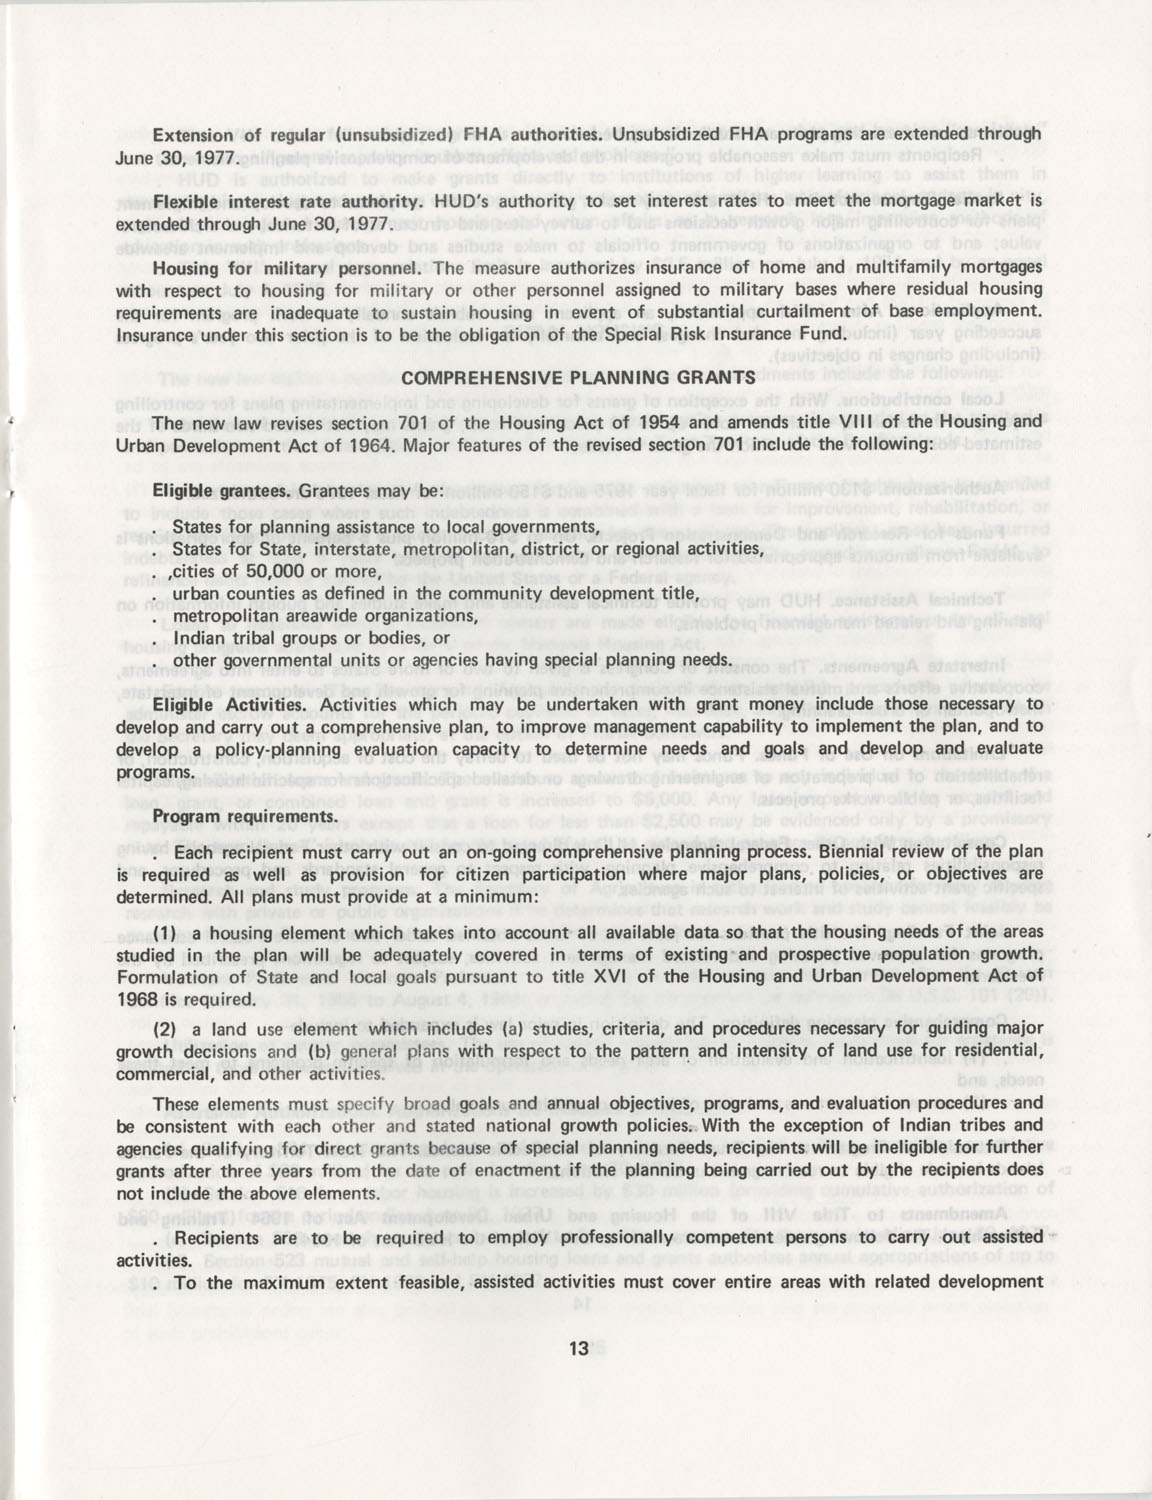 Summary of the Housing and Community Development Act of 1974, Page 13